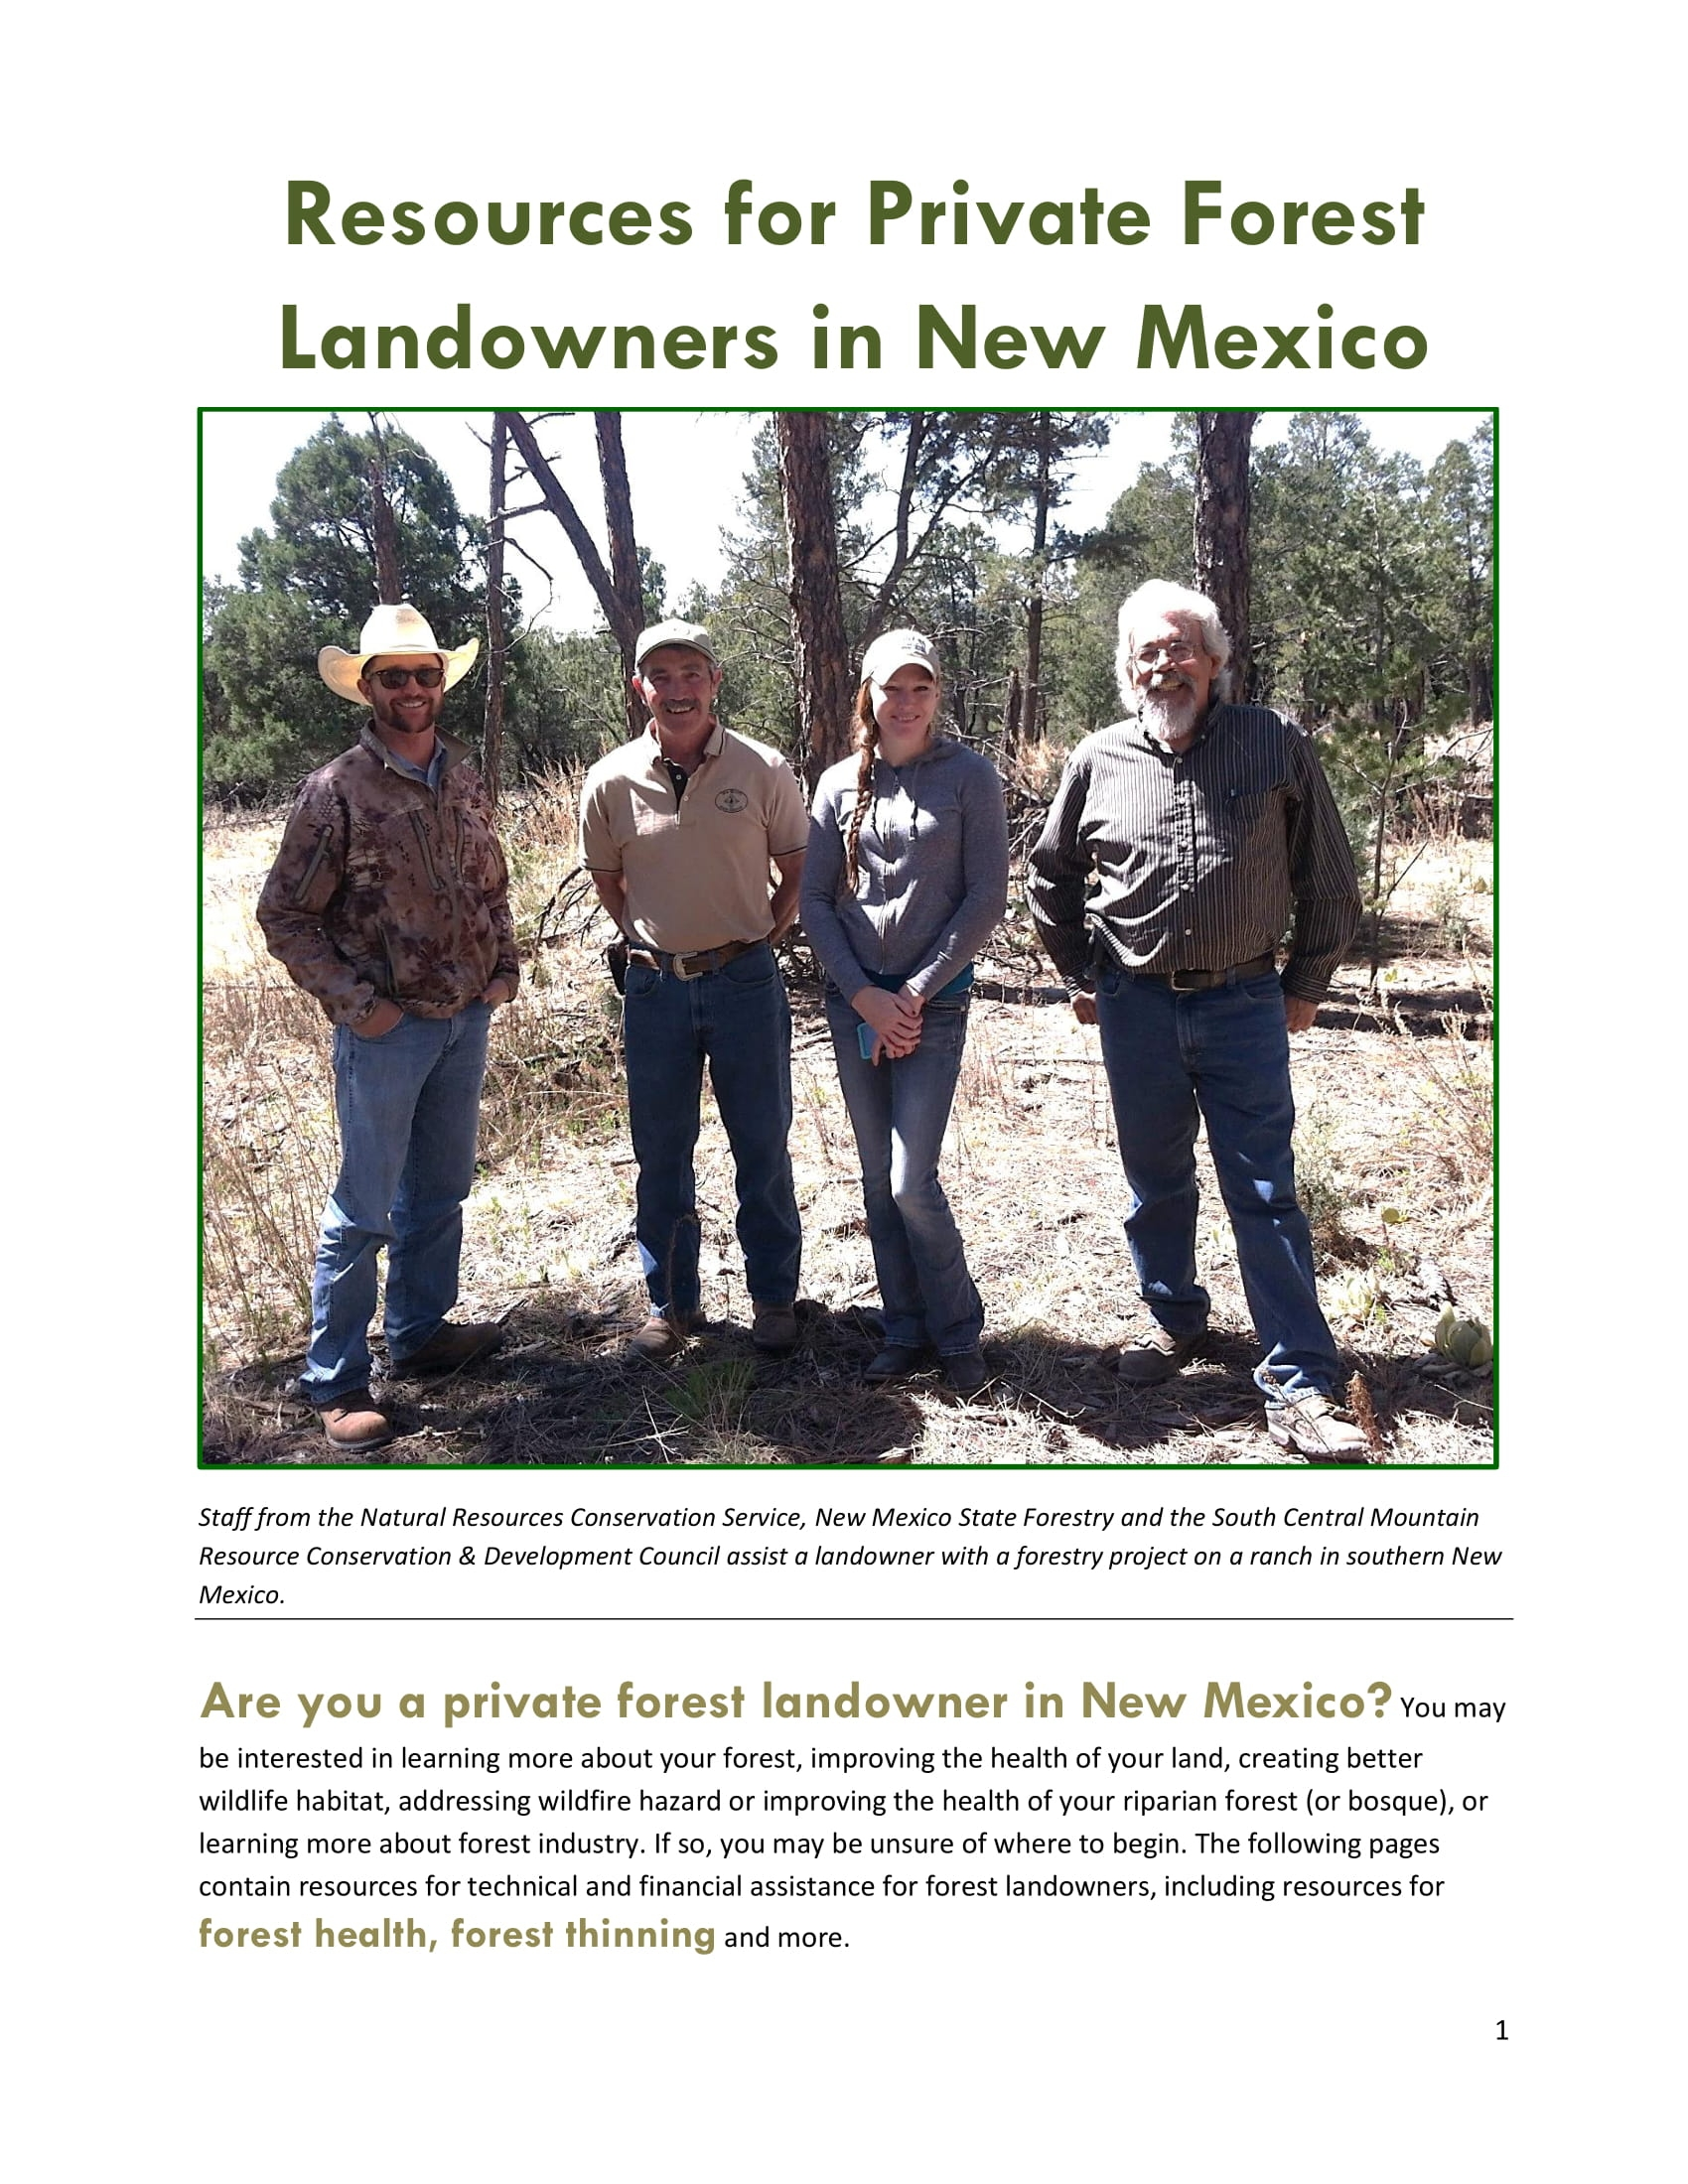 Resources for Private Forest Landowners